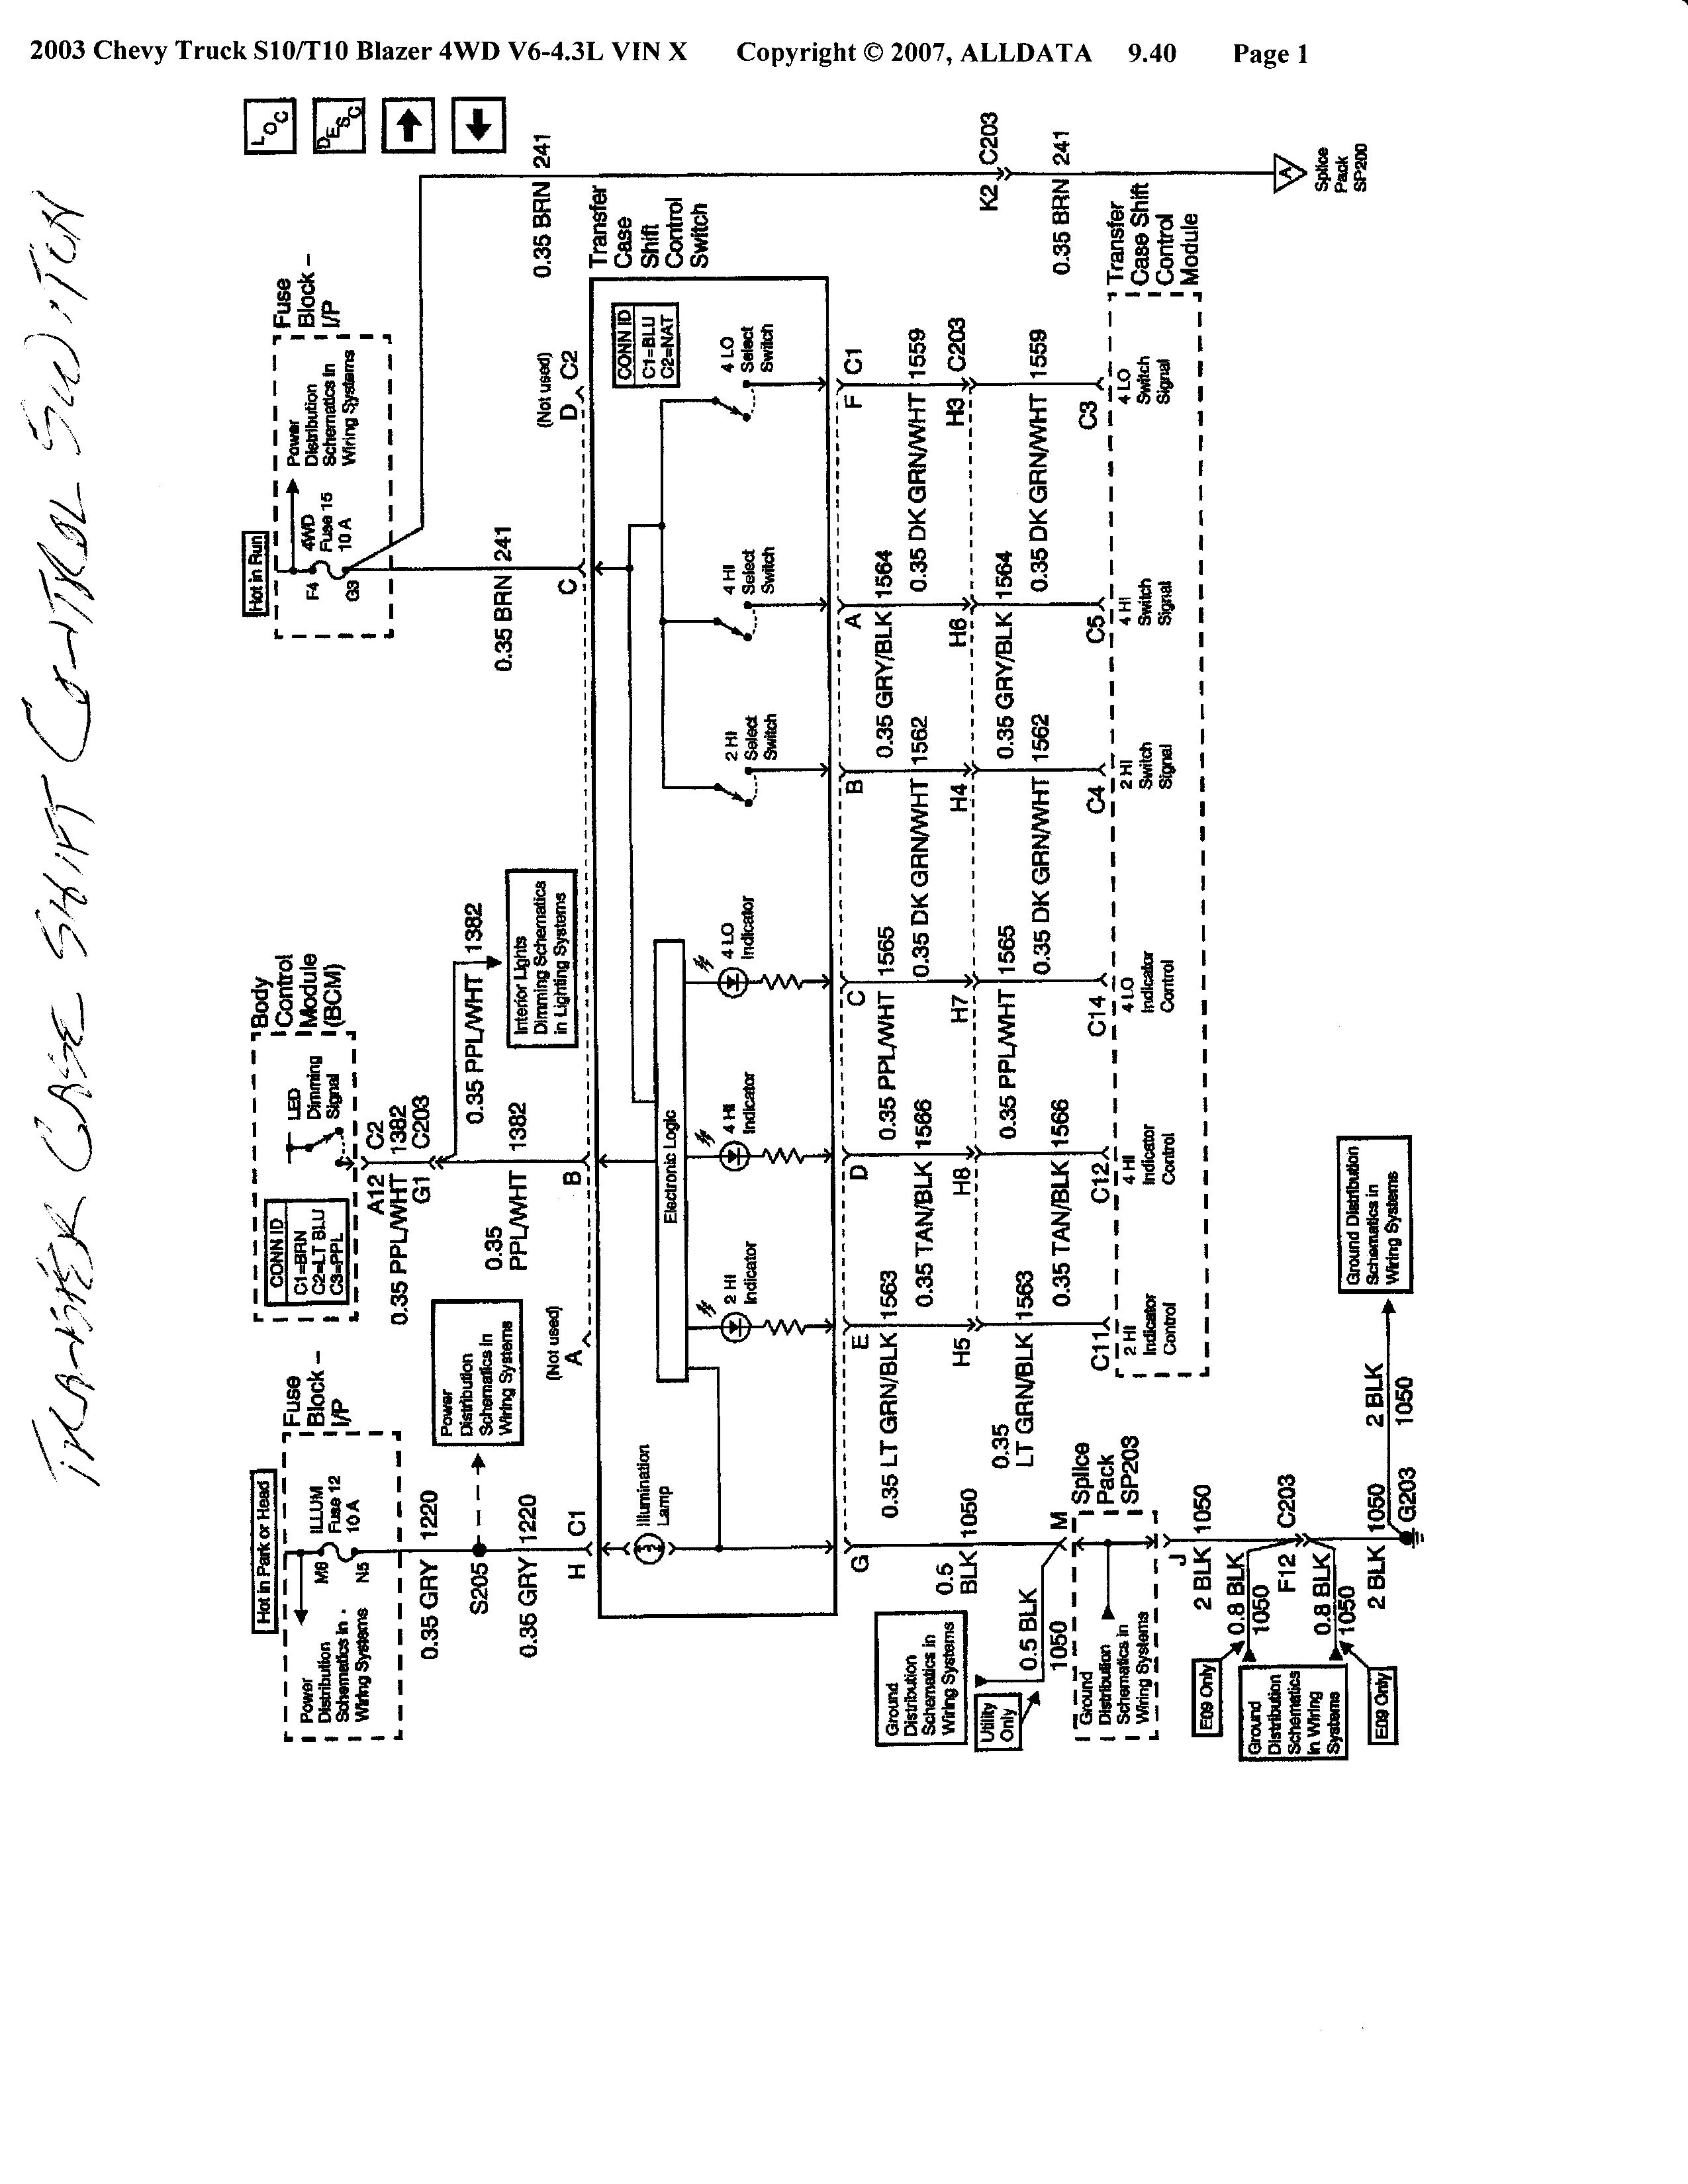 2000 blazer 4x4 wiring diagram simple wiring diagram rh david huggett co uk  1992 s10 blazer radio wiring diagram 1992 chevy s10 blazer fuse box diagram